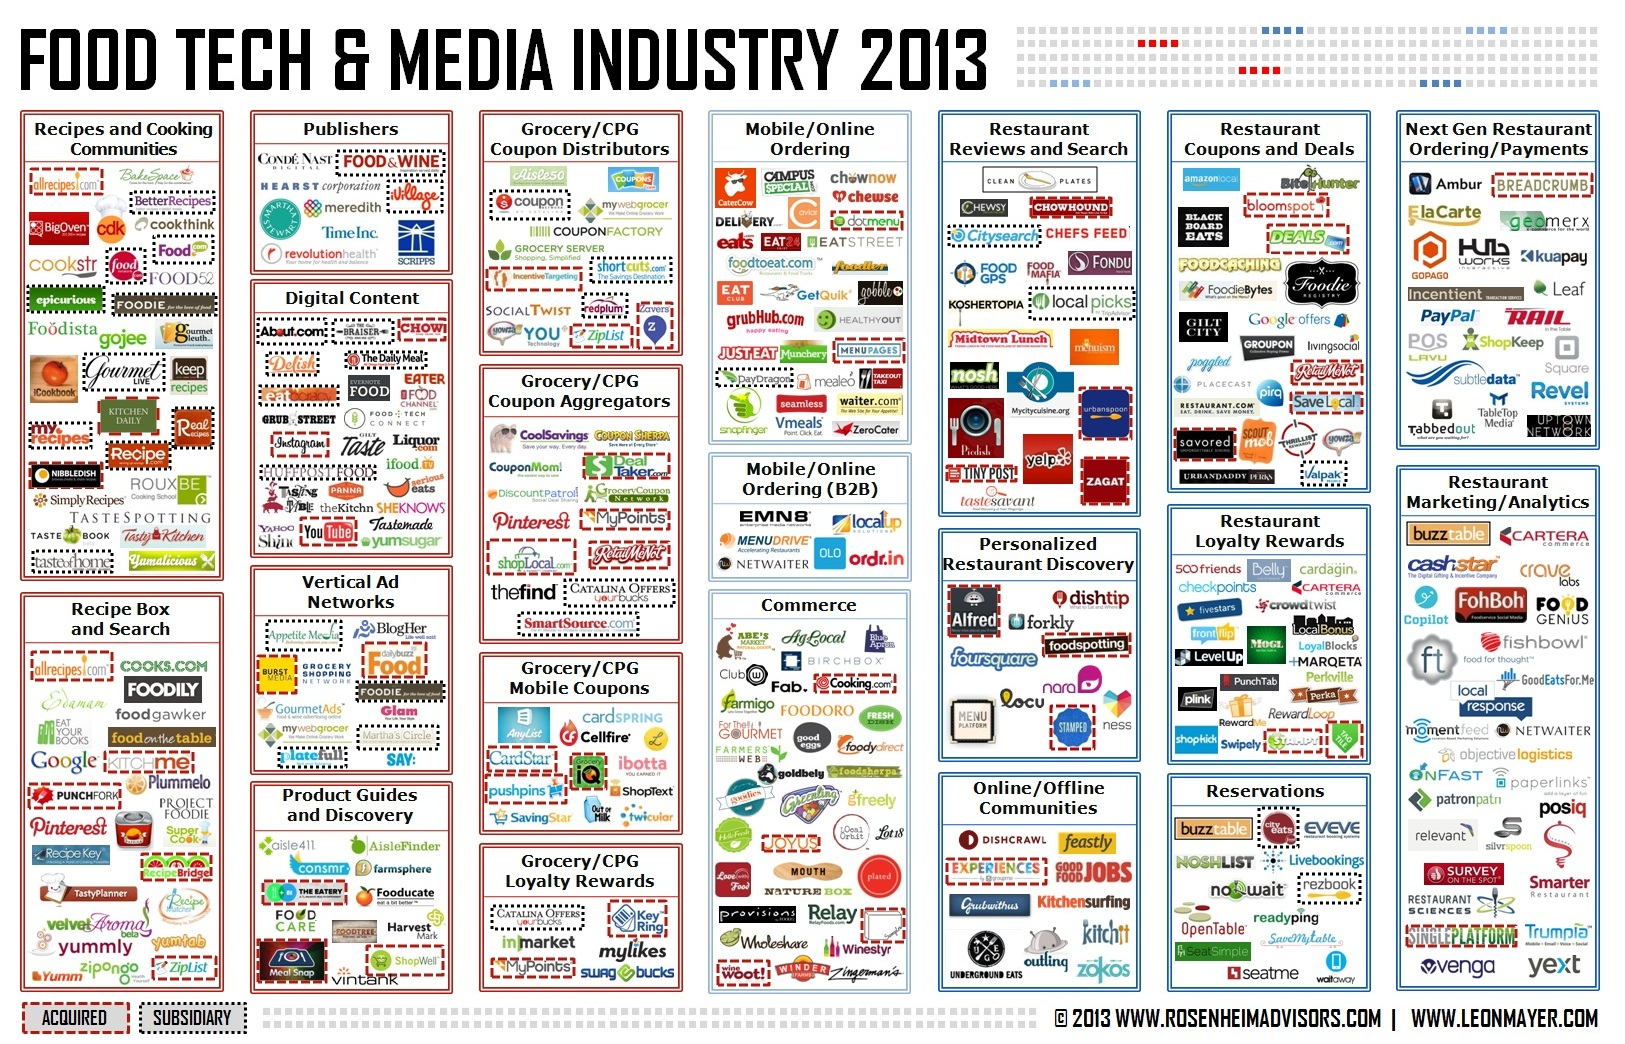 Food Tech and Media Industry 2013 - Rosenheim Advisors & Leon Mayer